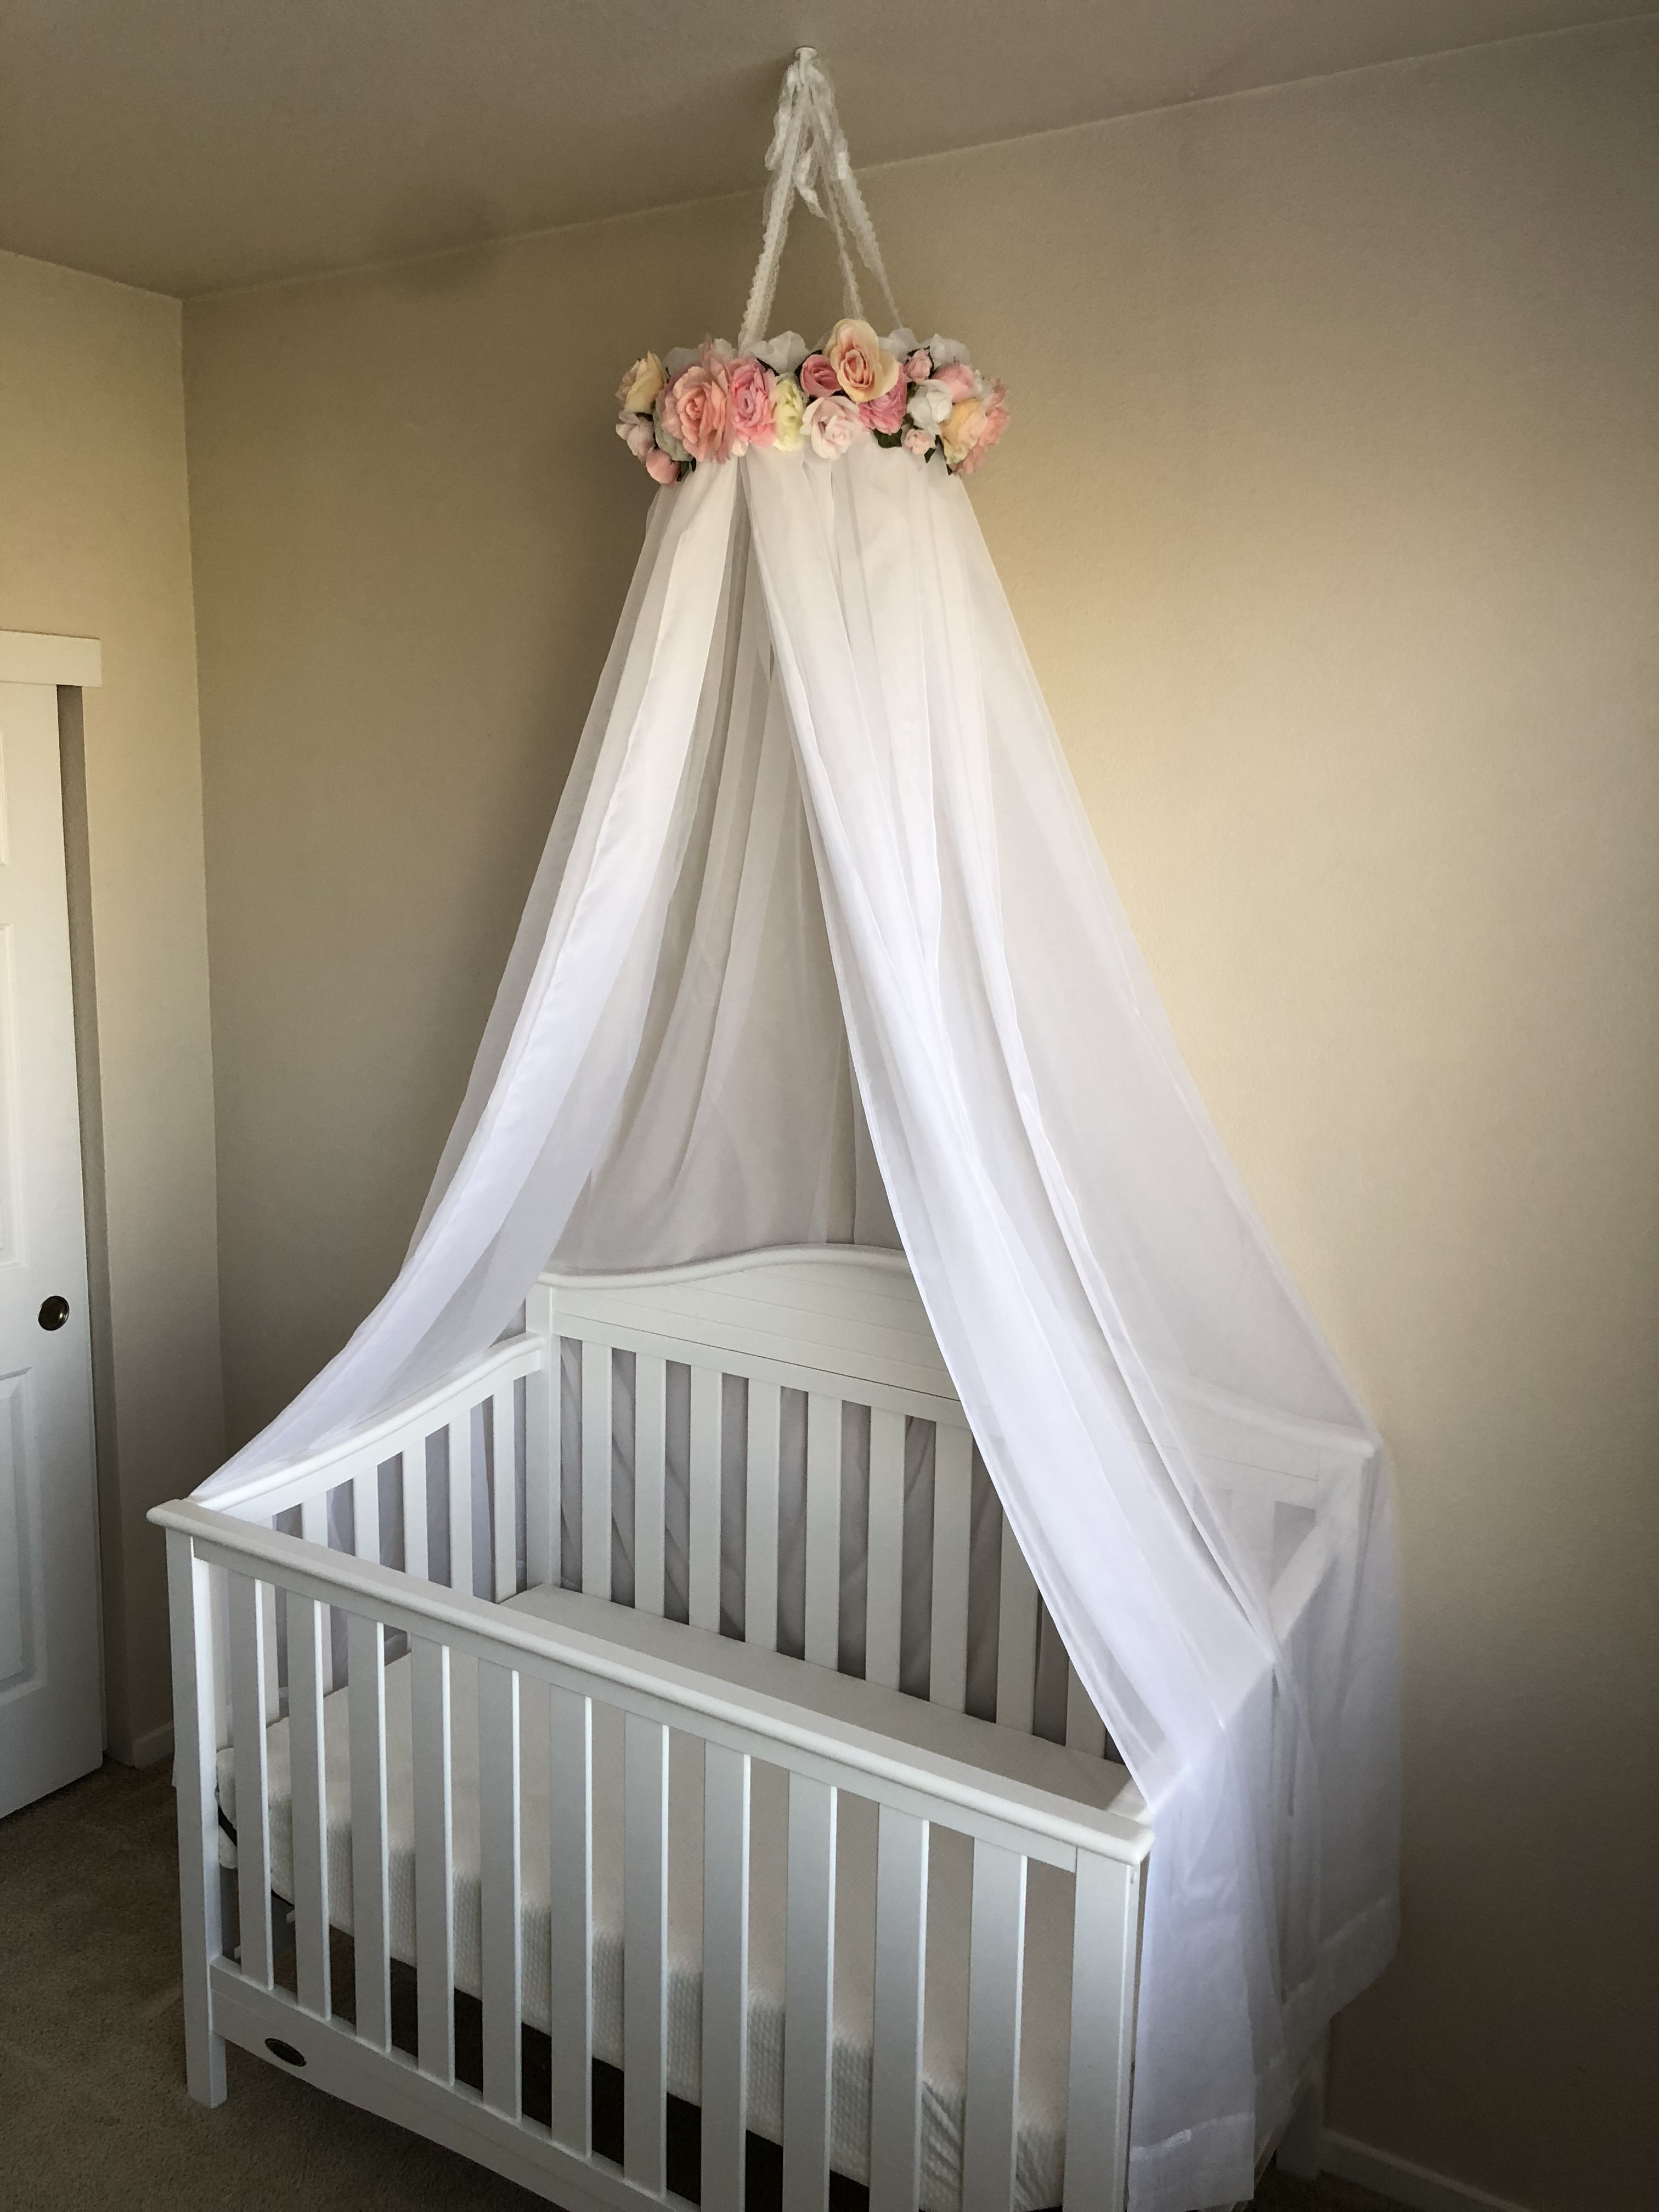 Pin By Malory Raybal On Nursery Ideas In 2020 Crib Canopy Diy